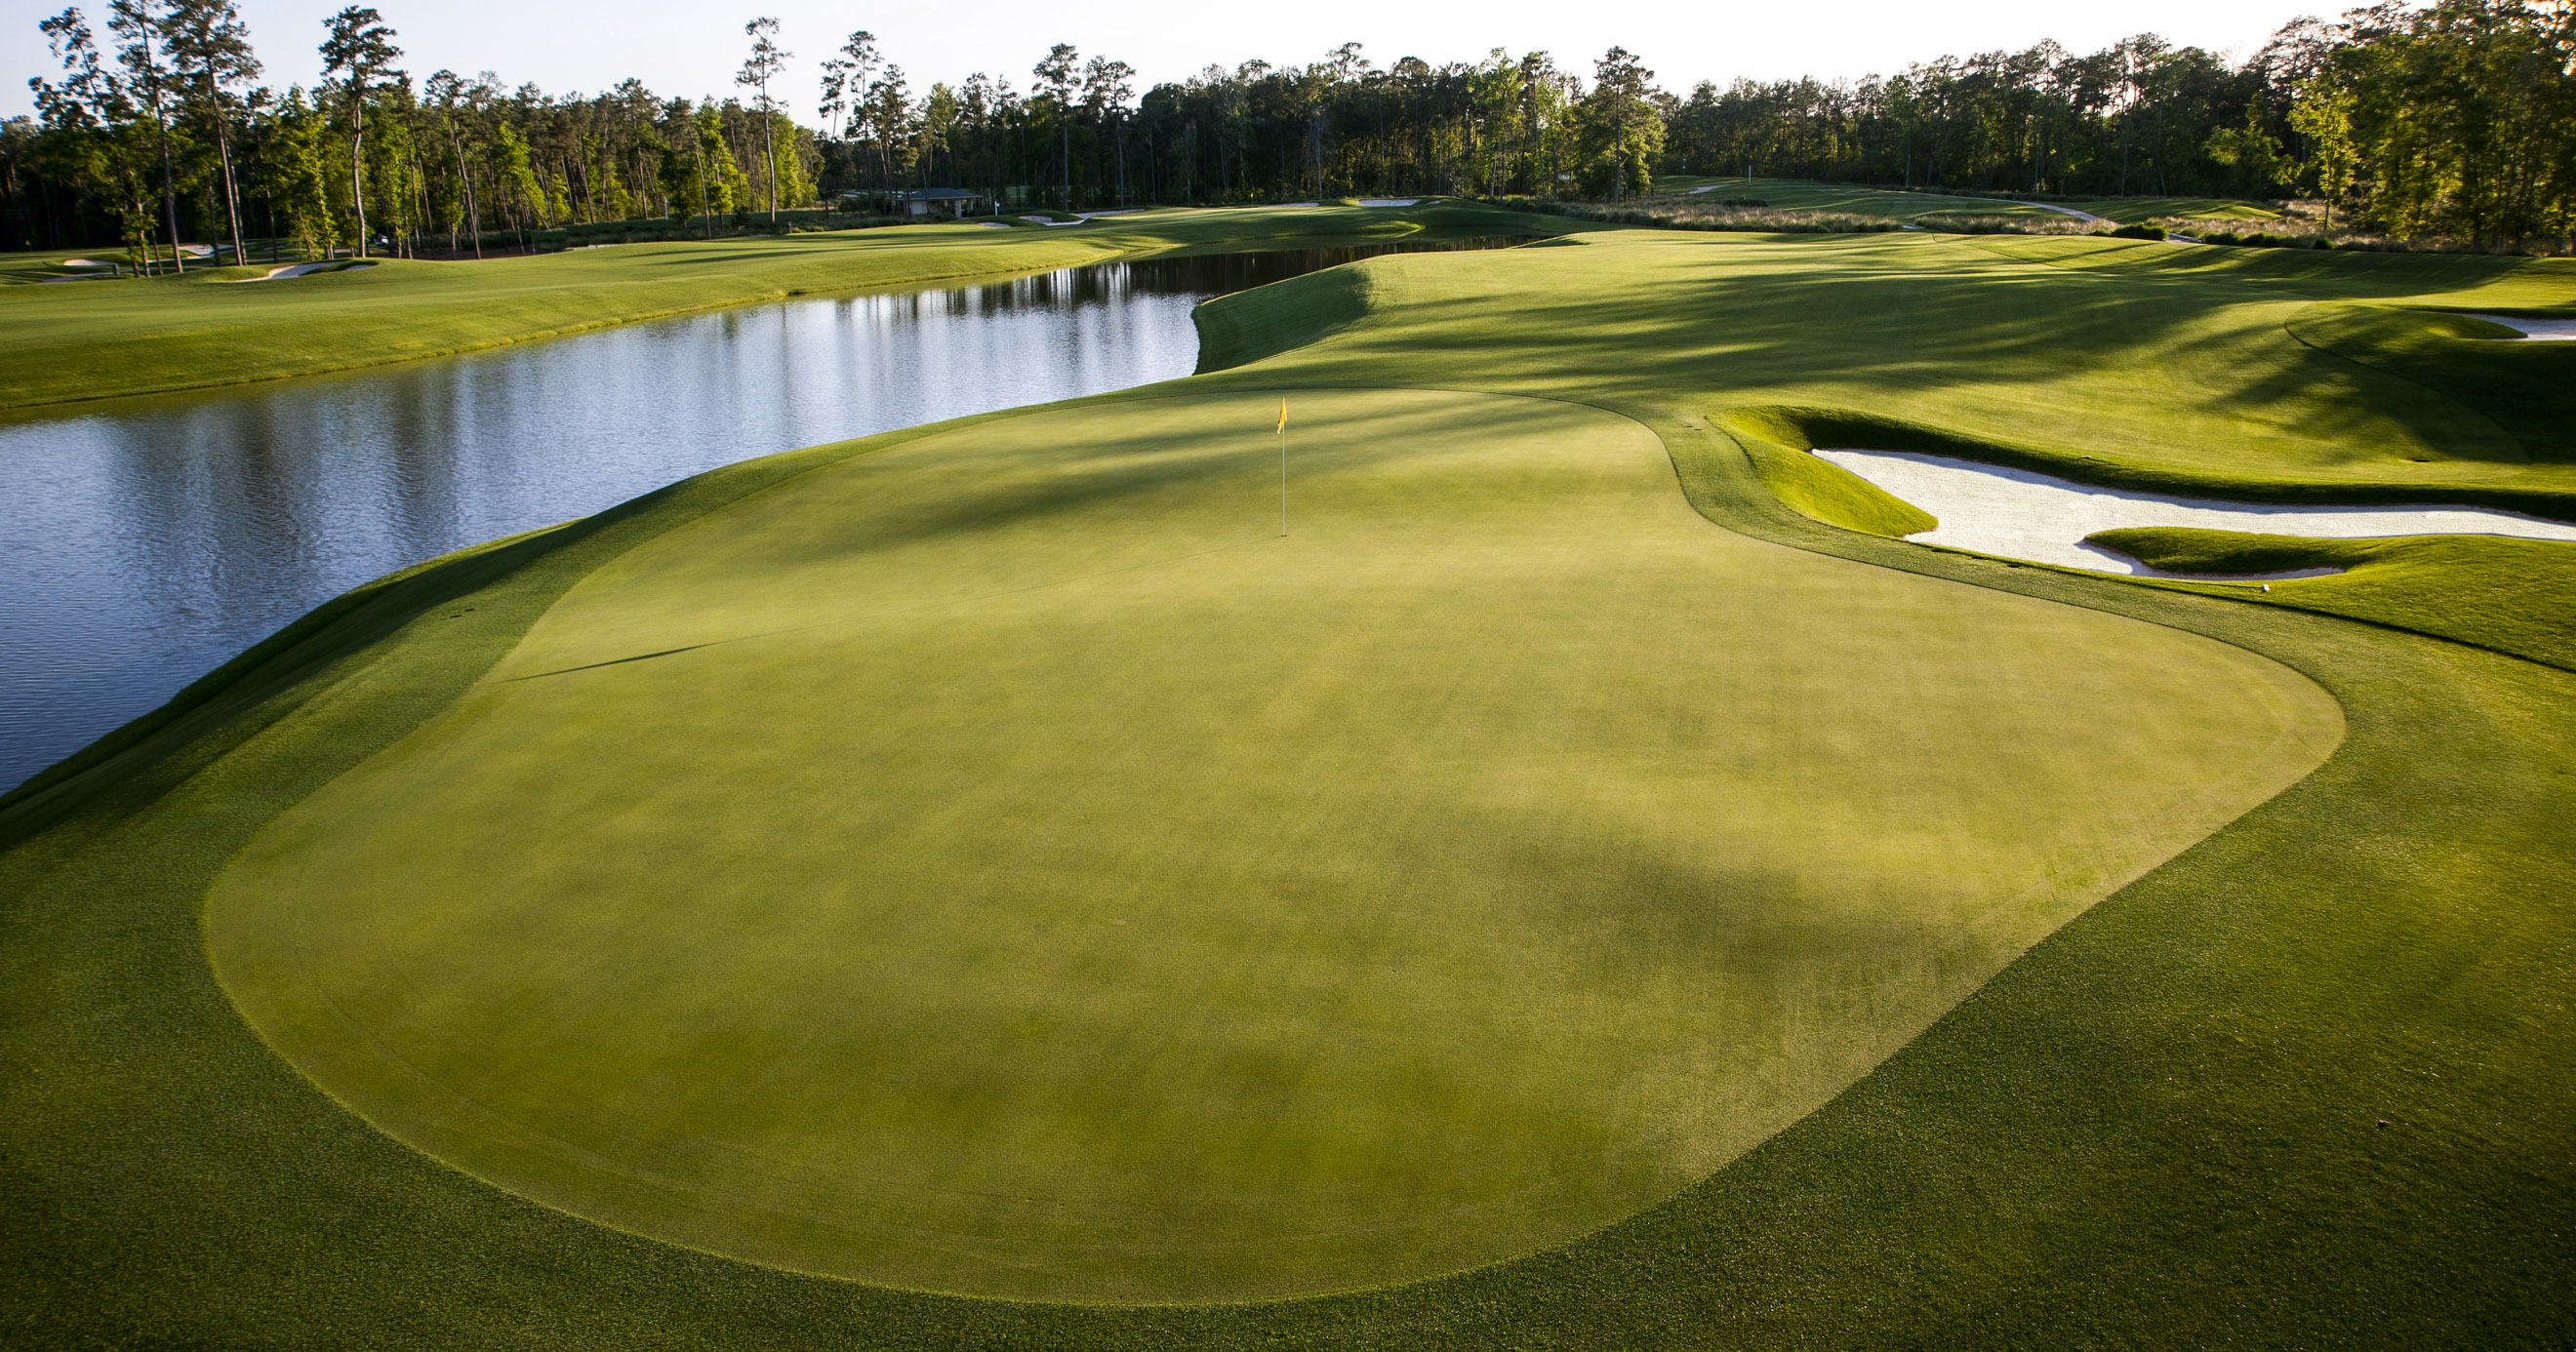 Houston, we have a problem! PGA Tour event could be about to go under... | GolfMagic